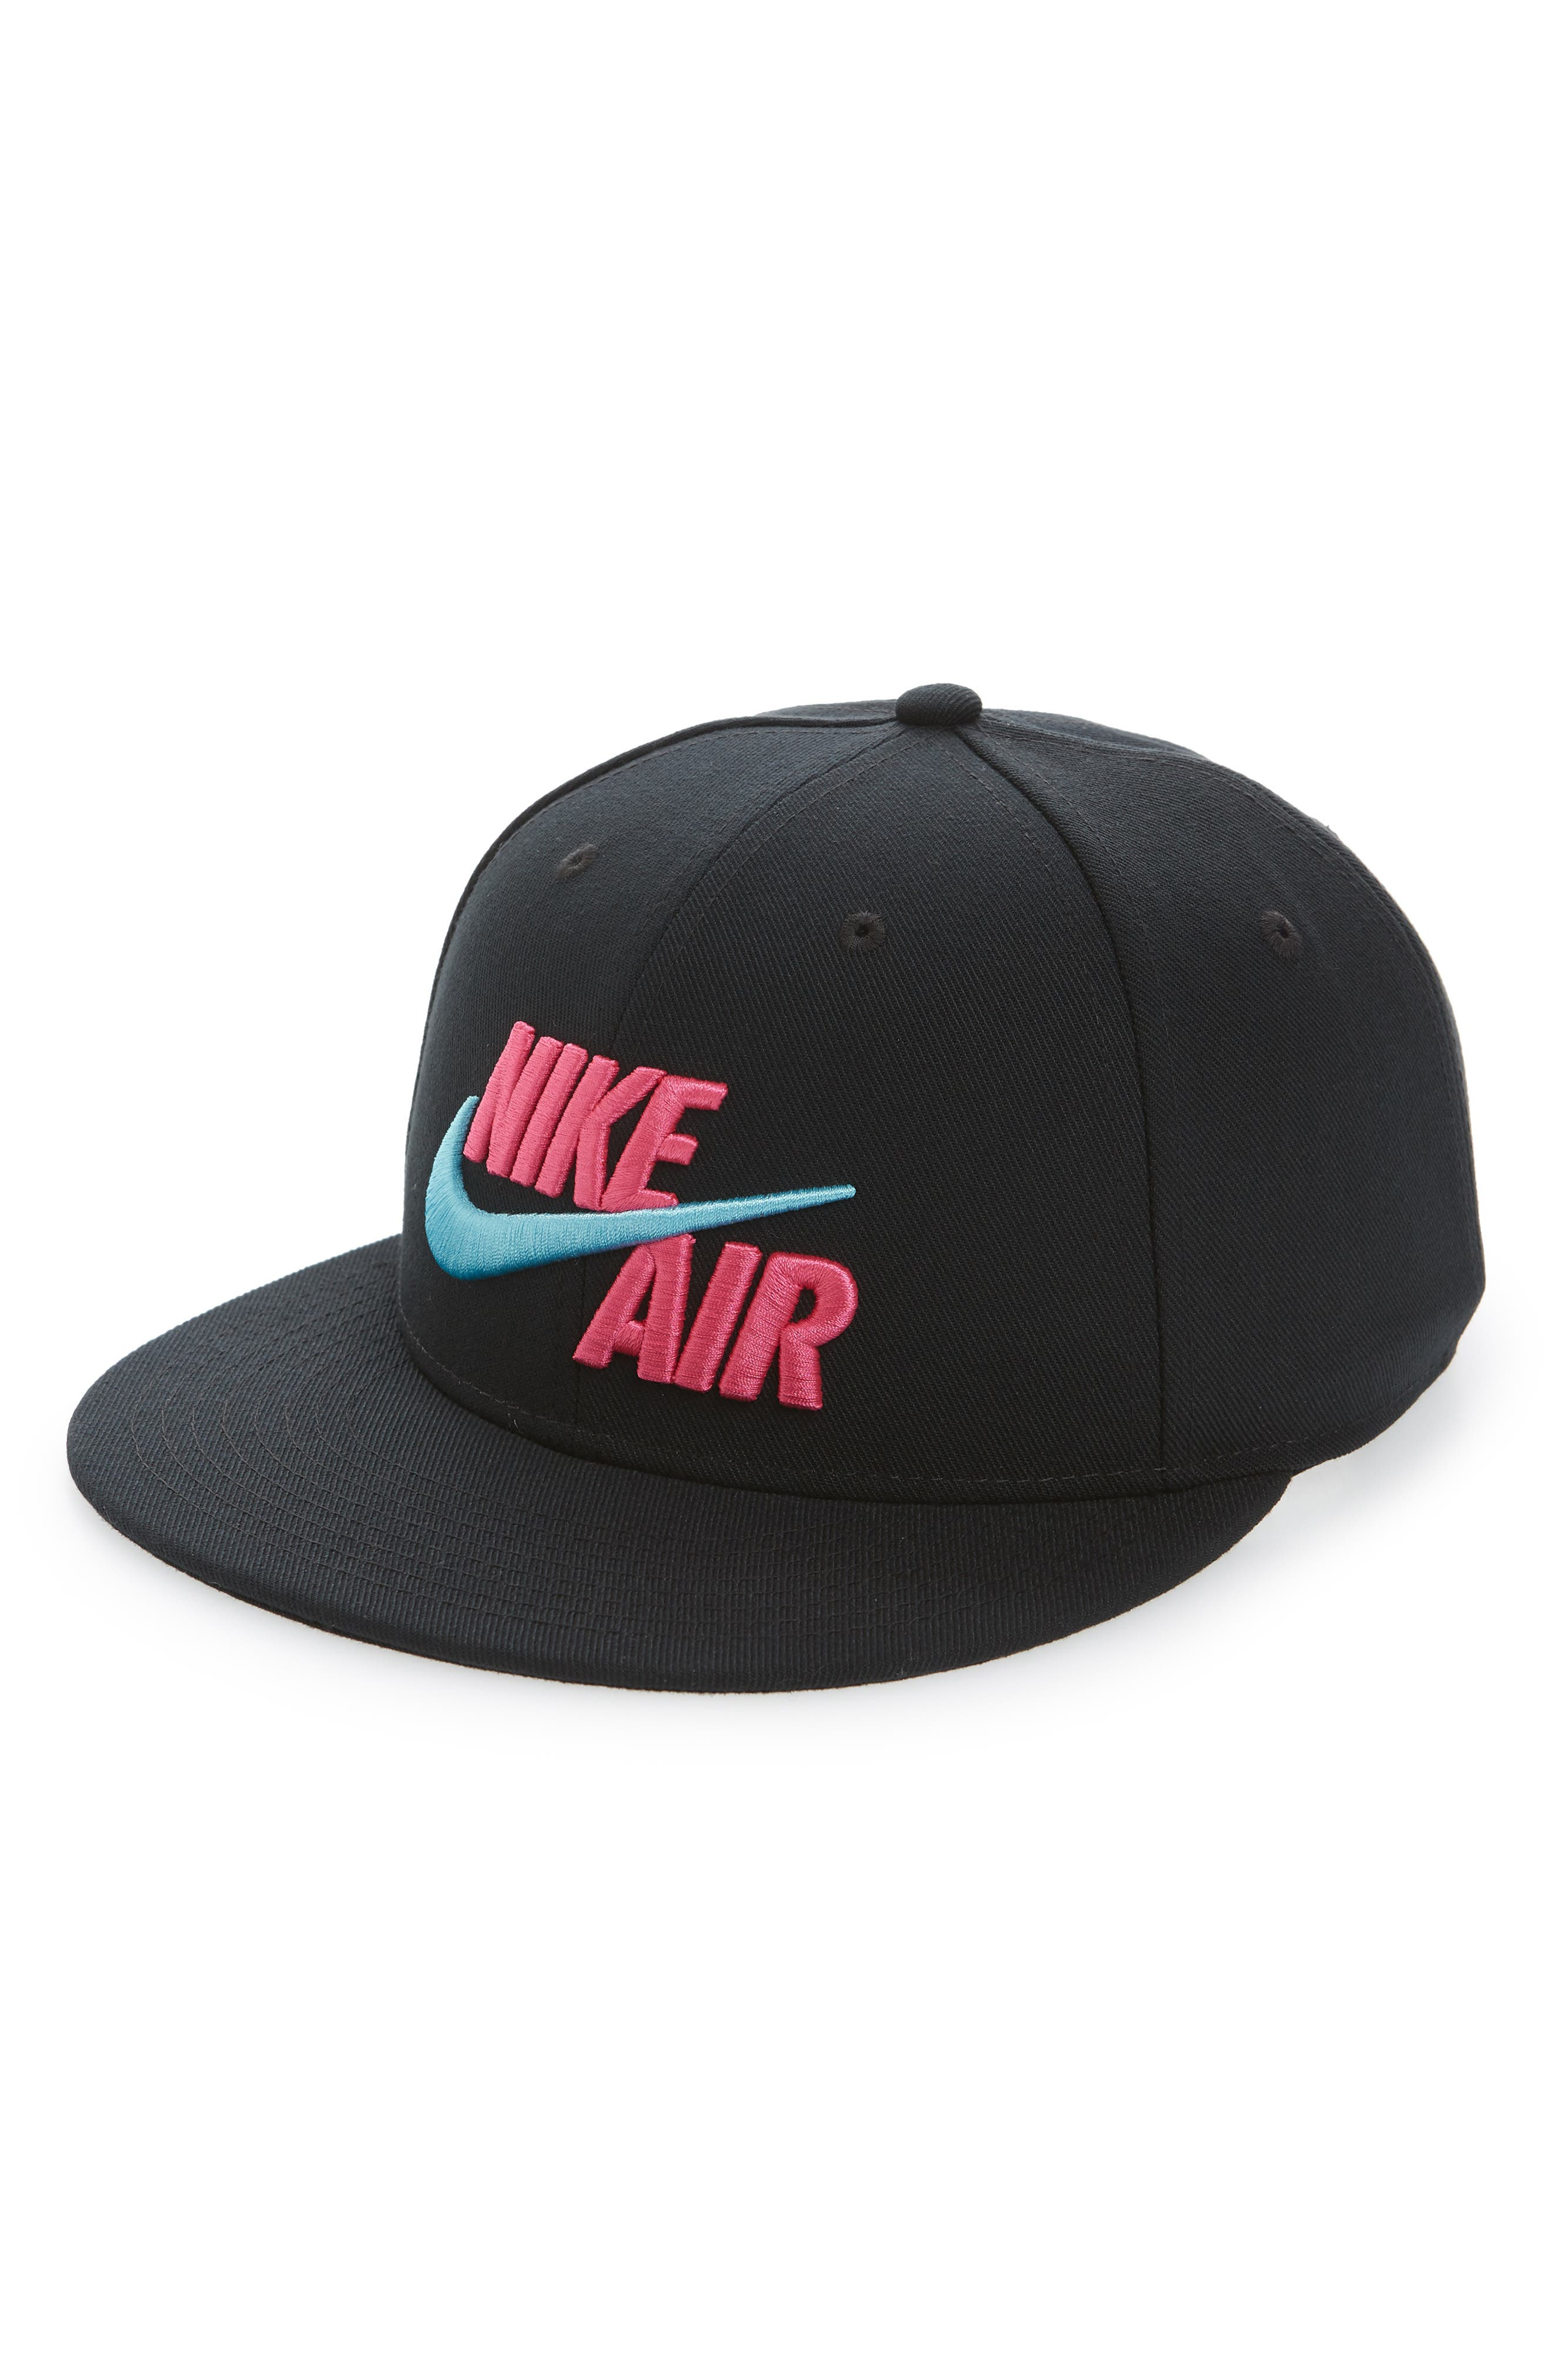 NIKE, Air True Snapback Baseball Cap, Main thumbnail 1, color, BLACK/ LASER FUCHSIA